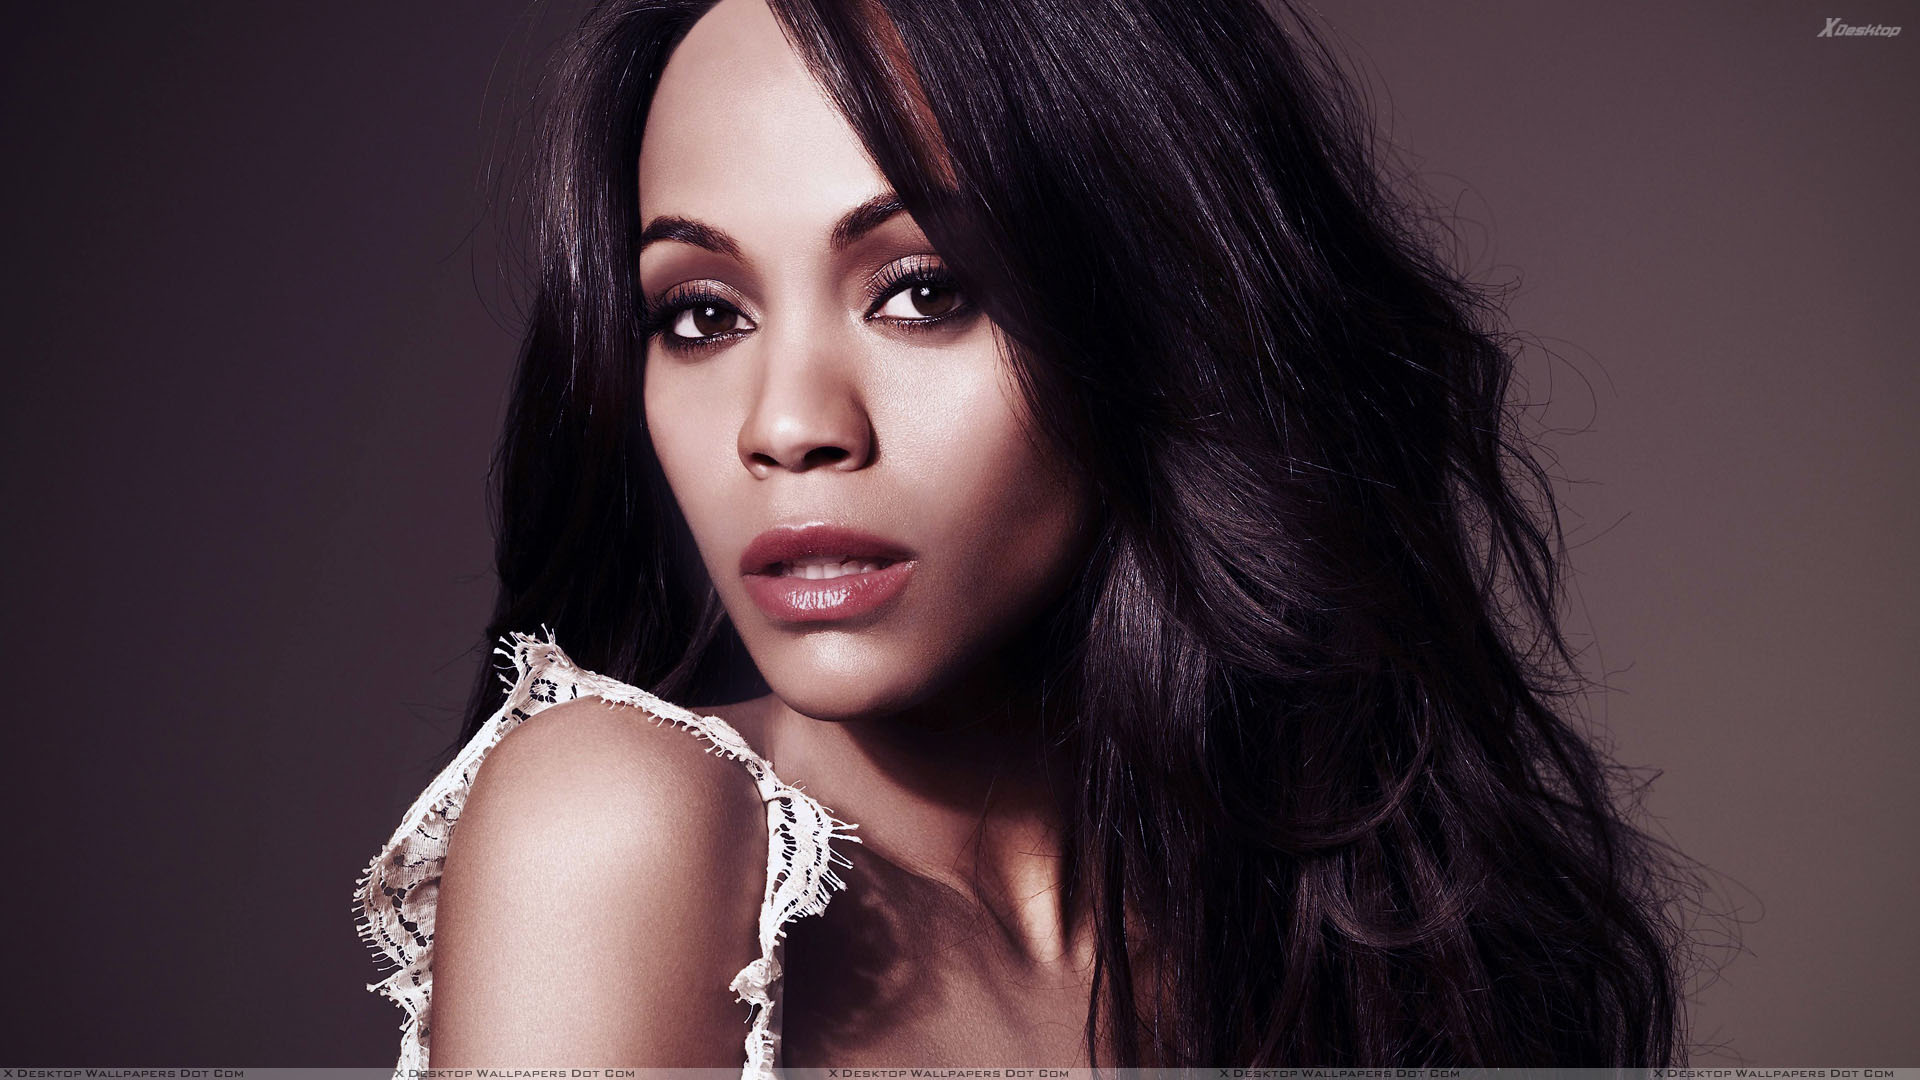 zoe saldana Zoe saldana half nude posing she is posing in hot white underwear and showing us her biceps , she wants to show to everybody how strong she is.